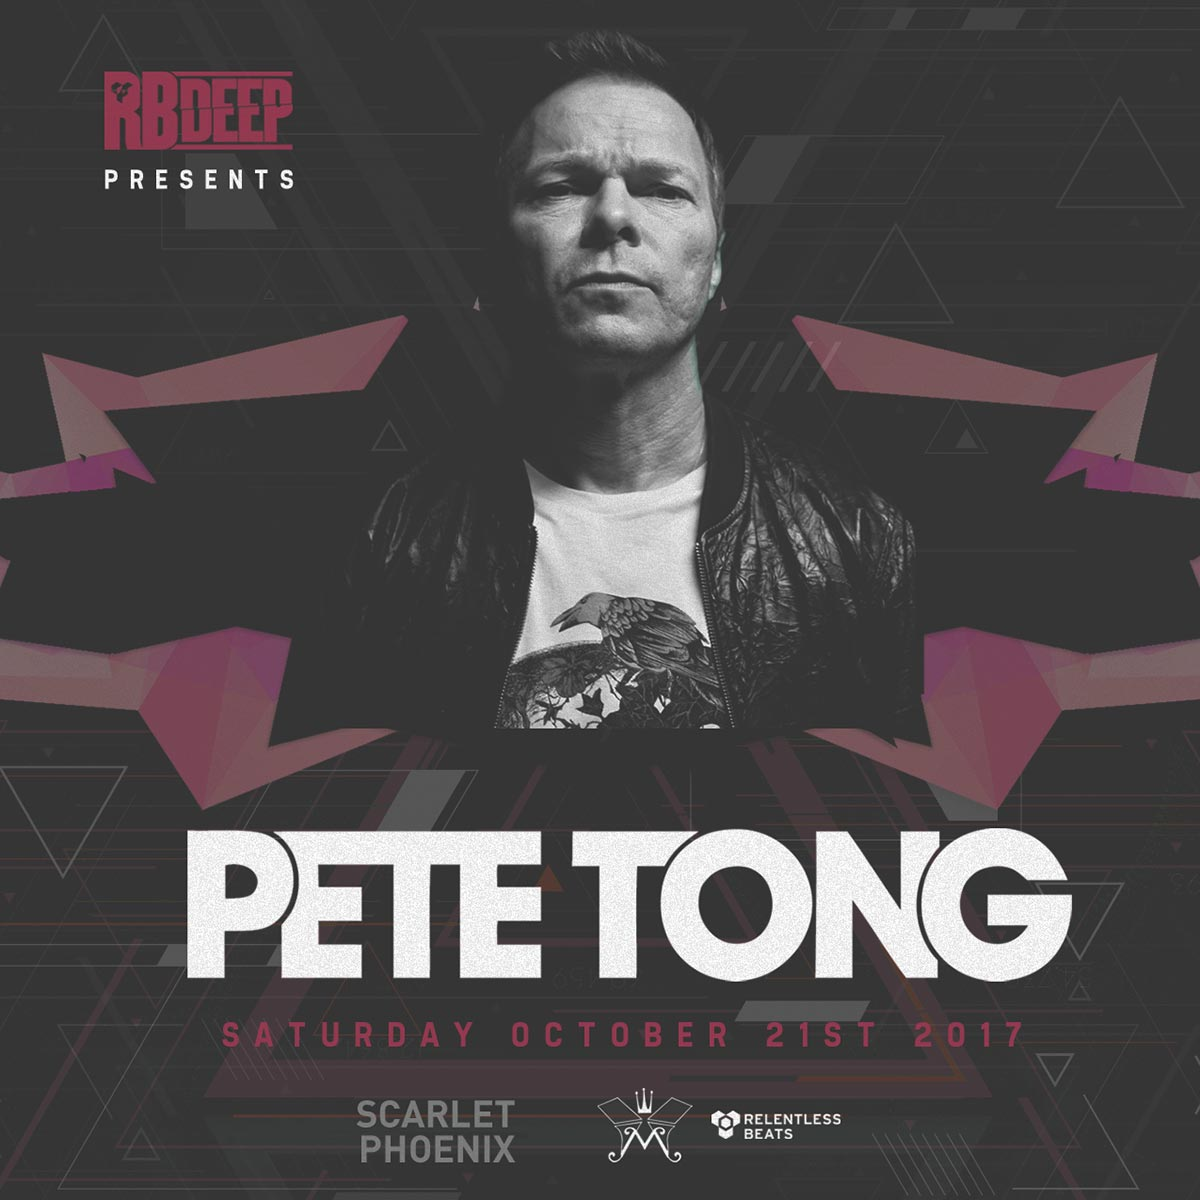 Flyer for Pete Tong at RBDeep